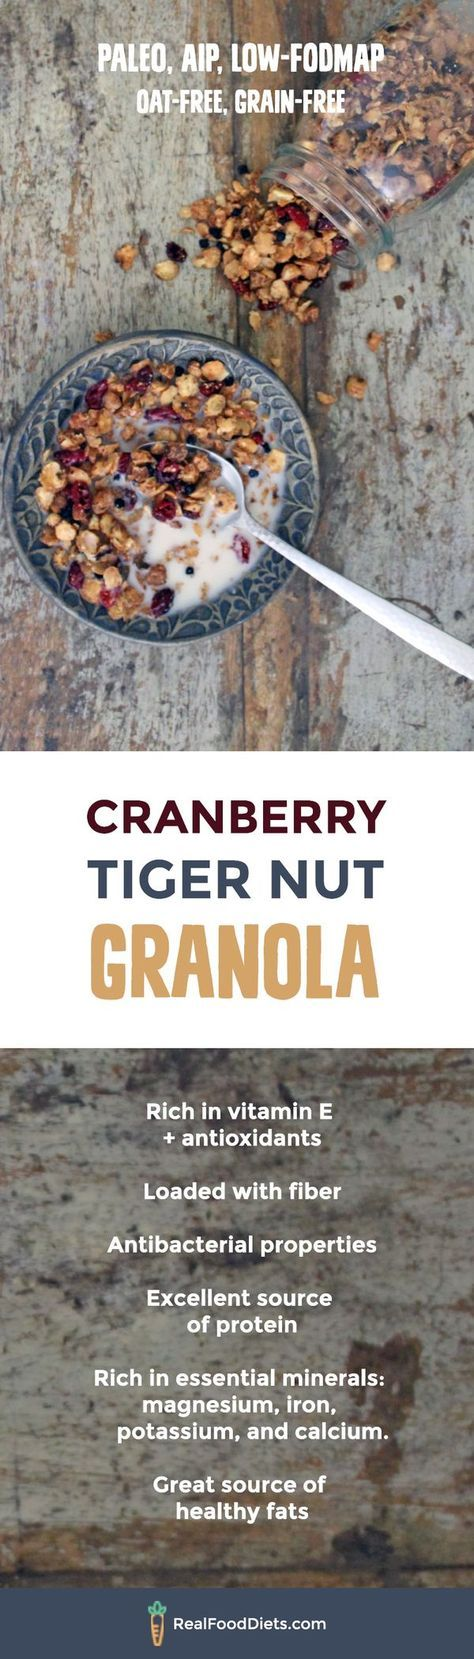 This oat free granola is sweet, crunchy, and oh so nourishing, even more so when doused in homemade tiger nut milk. You can follow the recipe to make the crunchy tiger nut base and then pretty much add in any other ingredients that take your fancy! // Safe for paleo, aip (autoimmune protocol), and low fodmap diets and is grain free and gluten free.